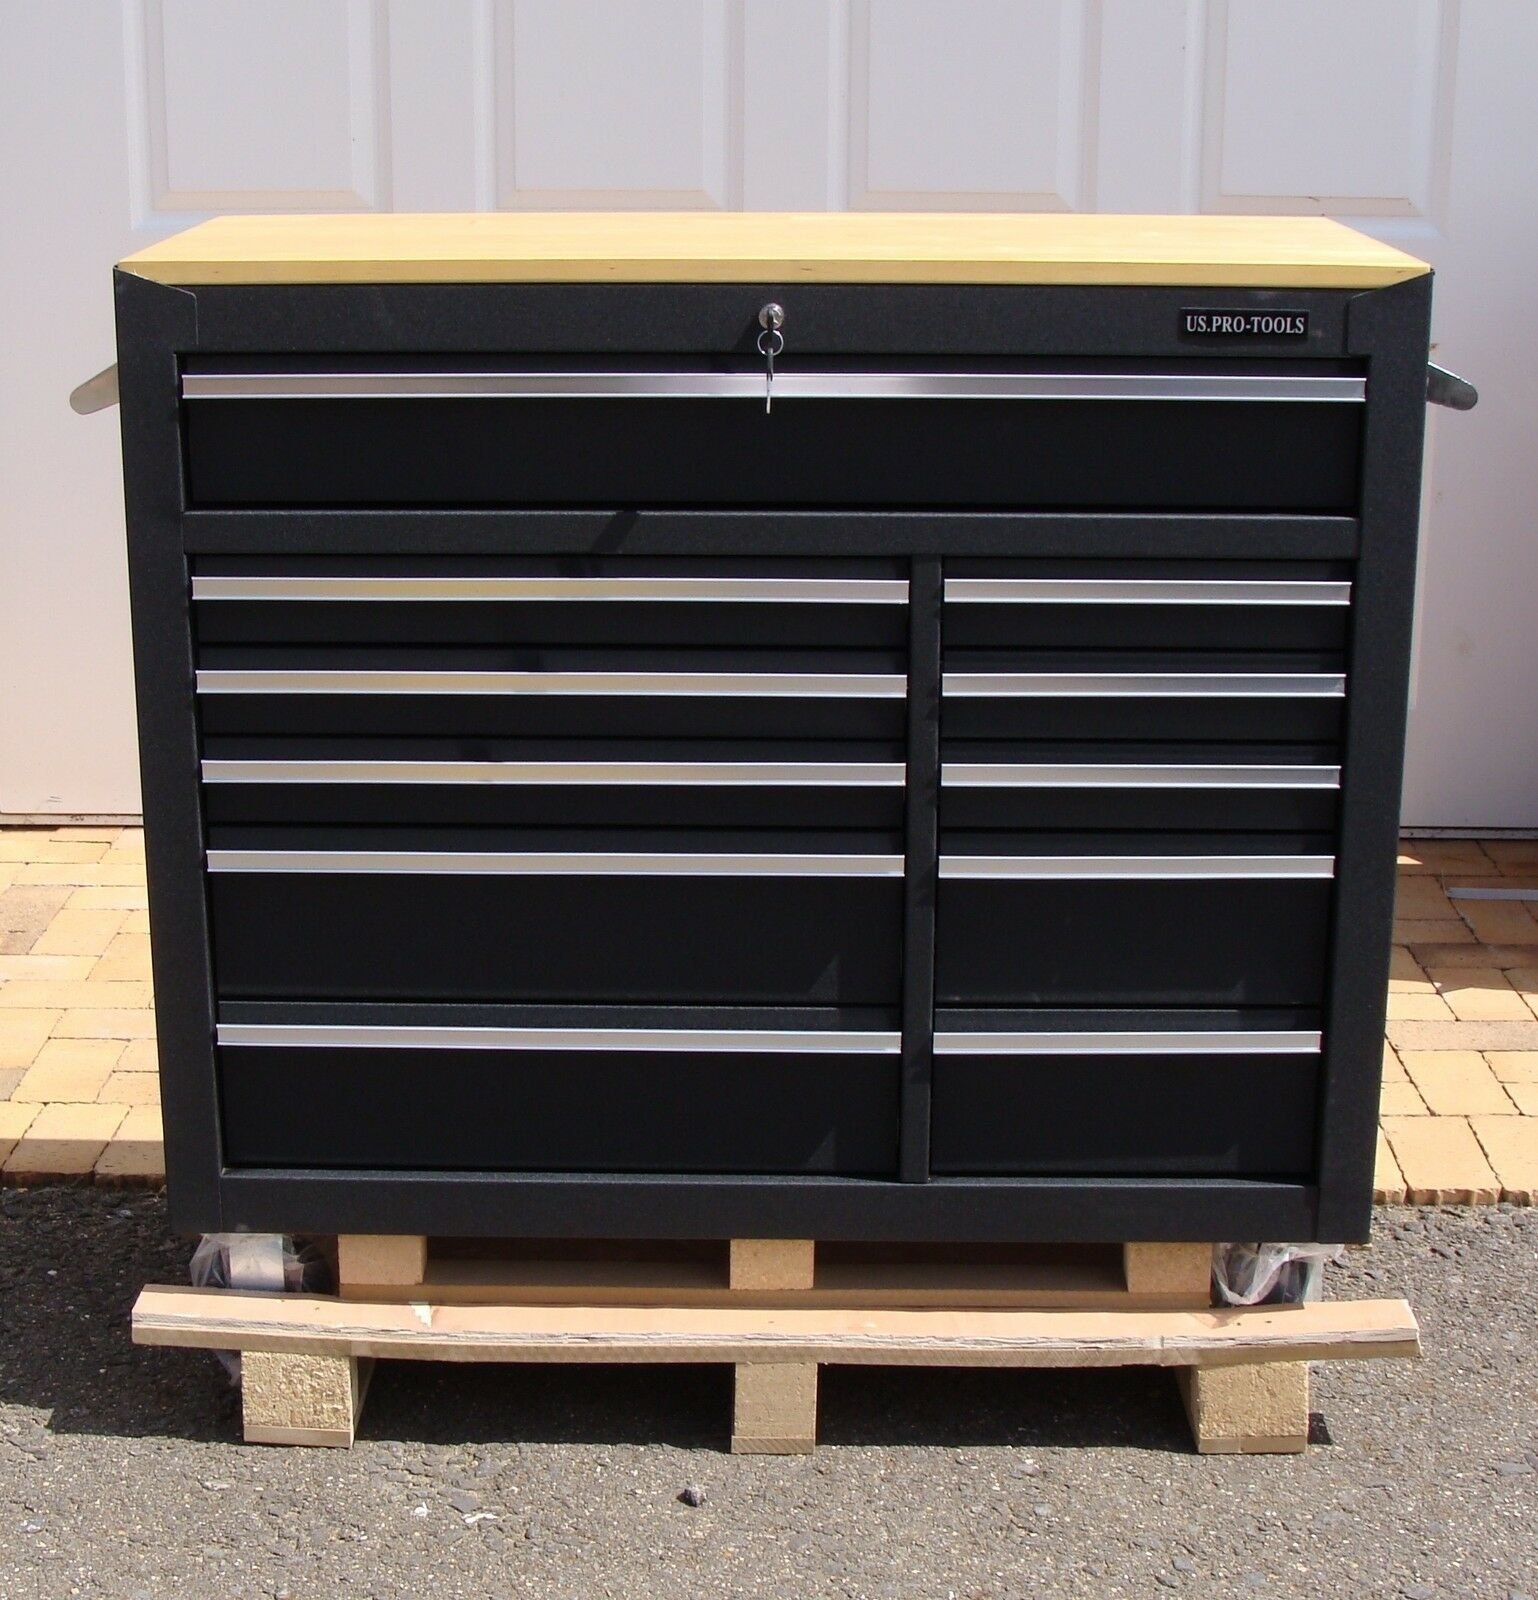 Us Cabinet: 23 US Pro Tools Black Tool Chest Box Roller Cabinet